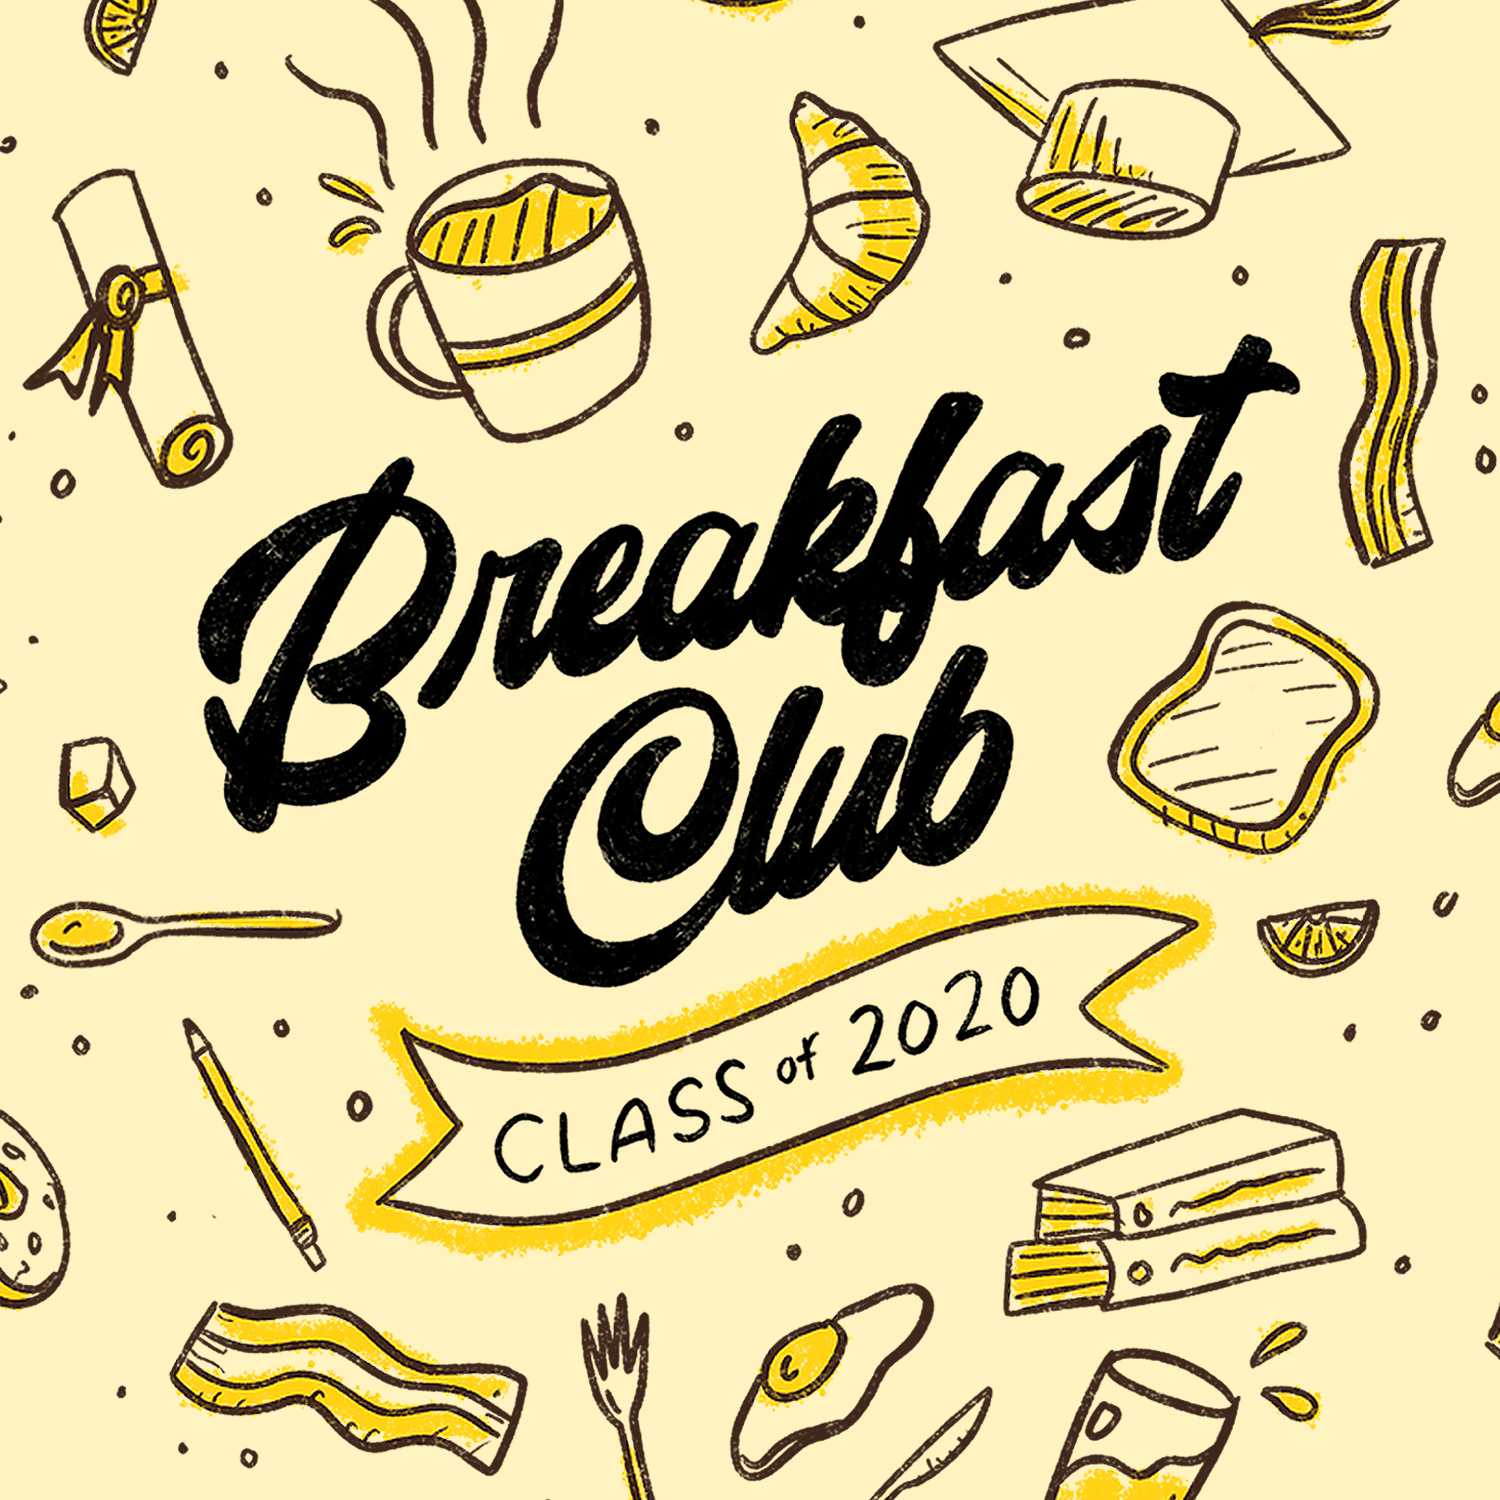 BreakfastClub_co2020_digital_square.jpg